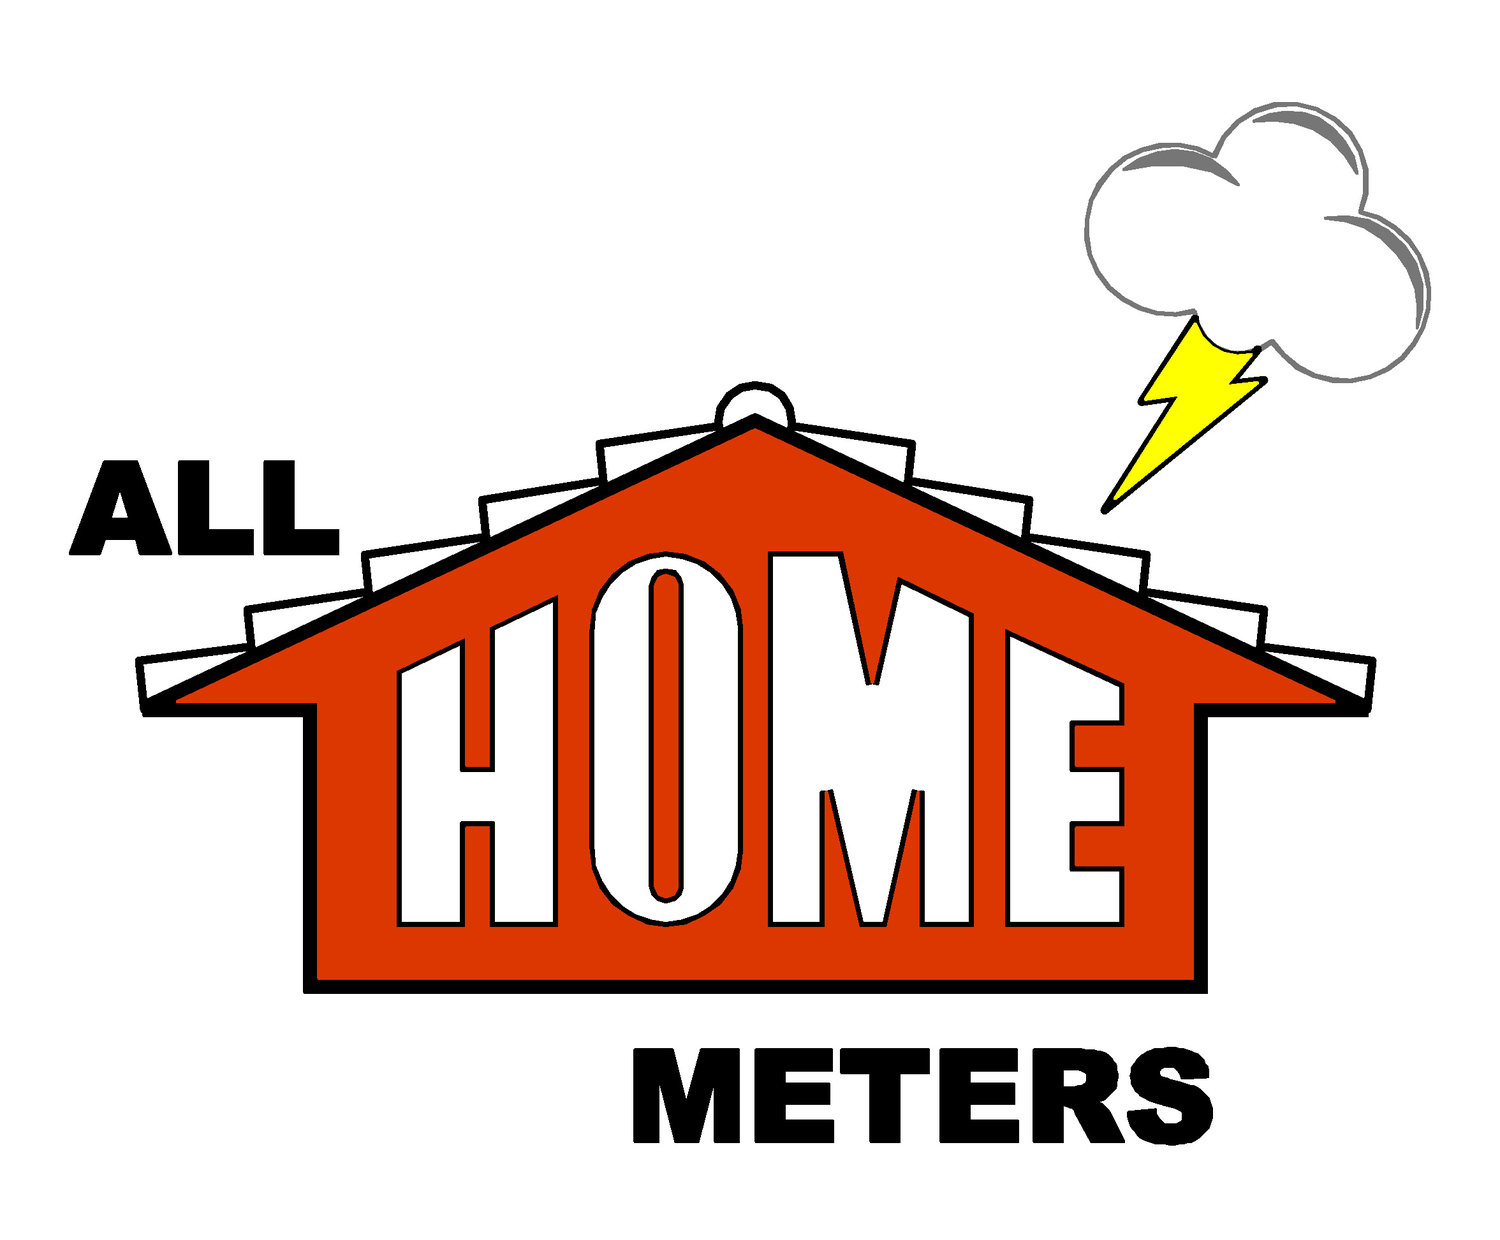 All Home Meters.